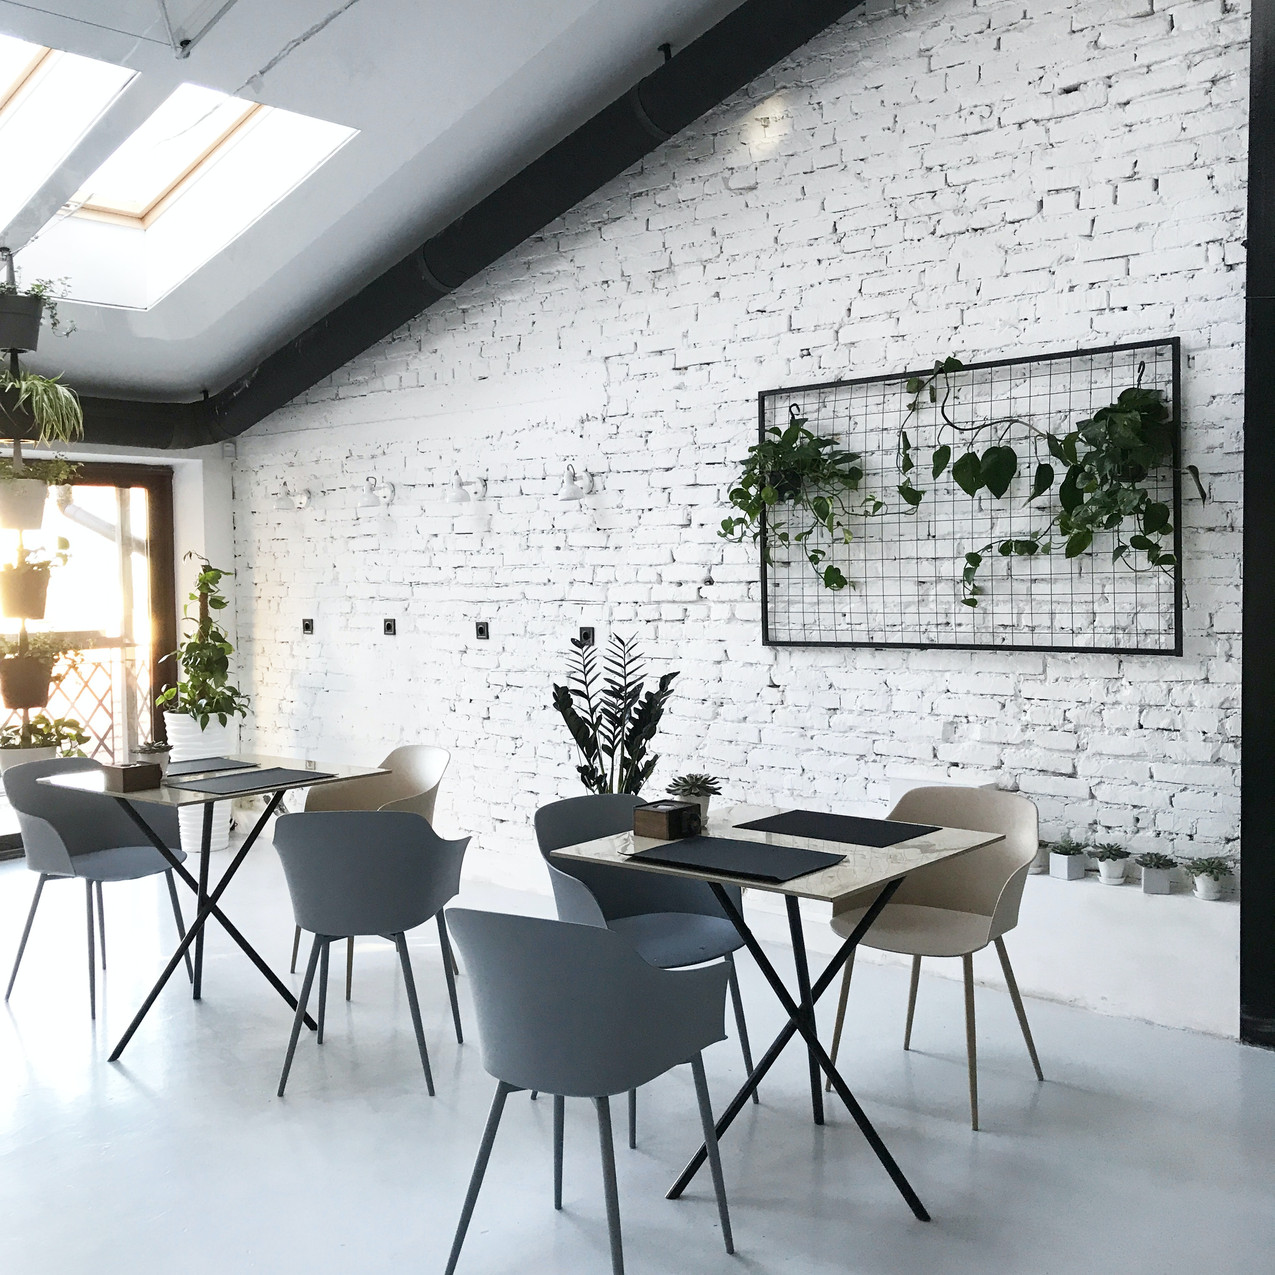 photo-of-dining-tables-inside-cafe-35817